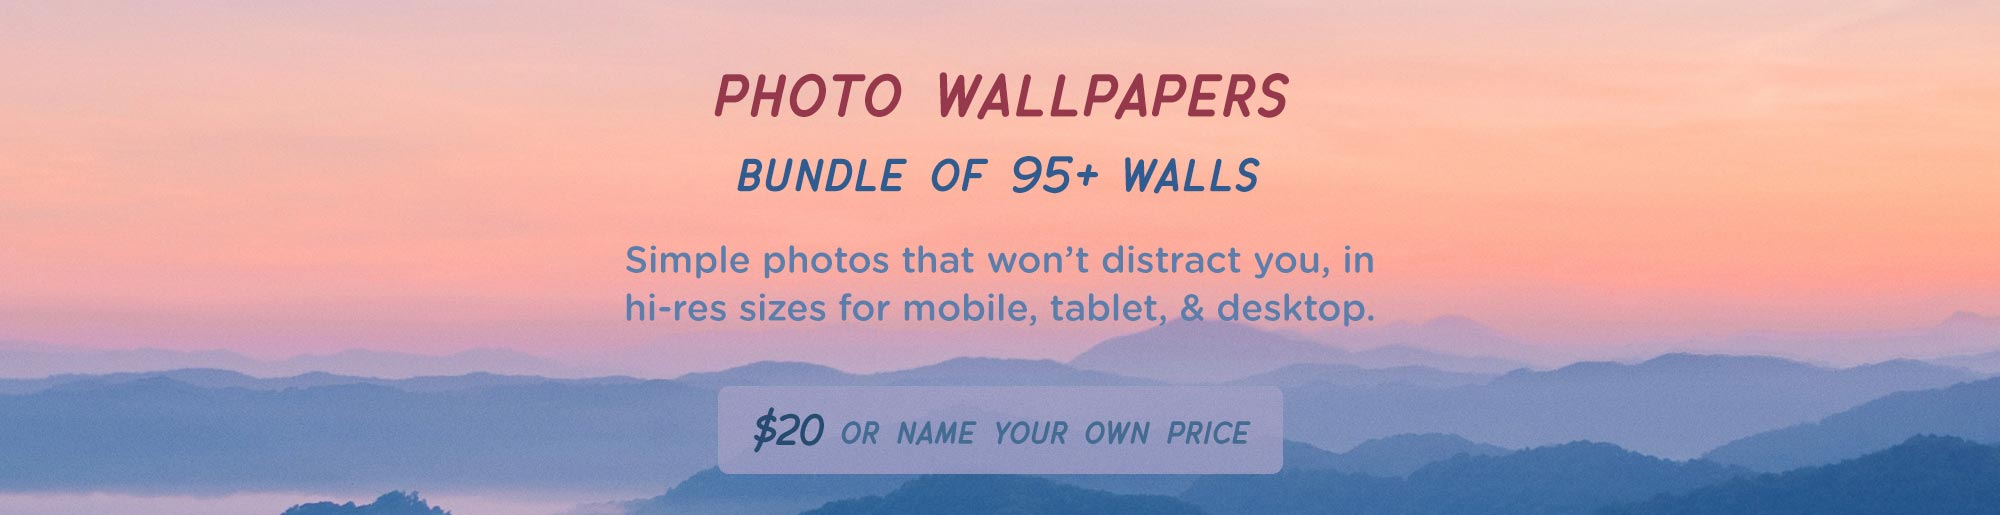 Photo Wallpaper Bundle